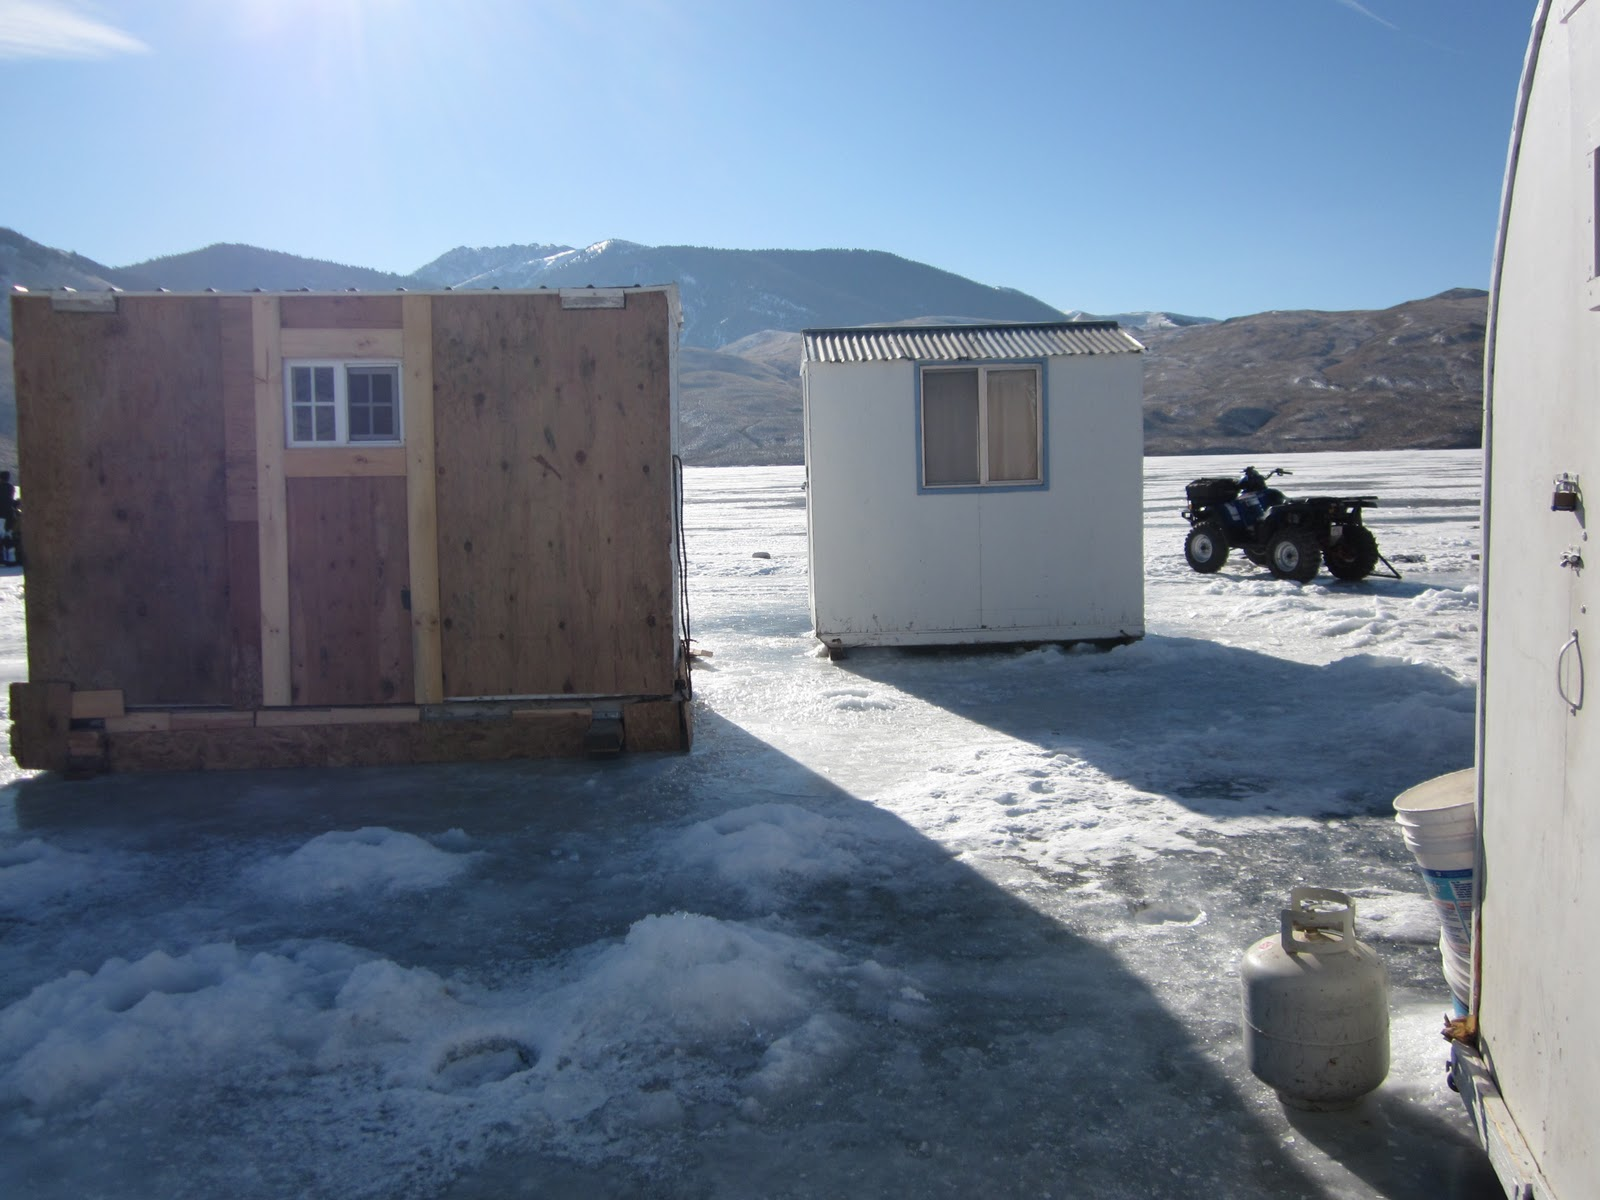 Mackay Idaho 83251 Mackay Idaho Ice Fishing On The